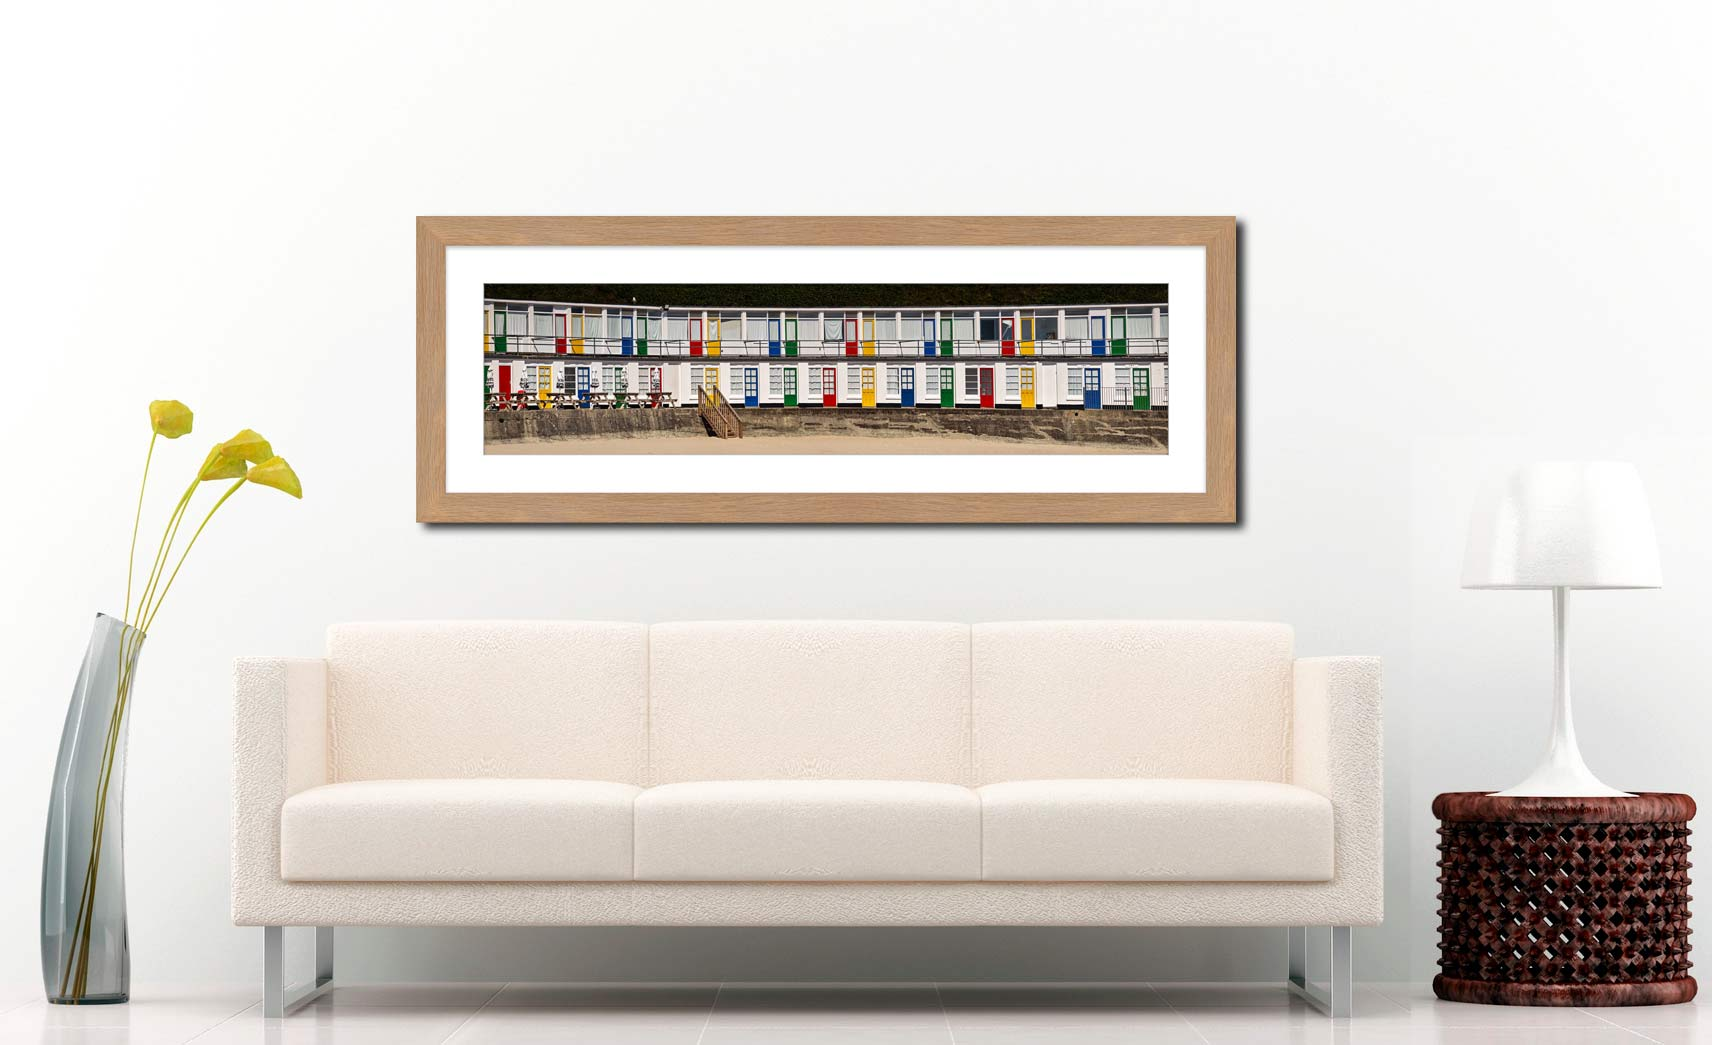 Porthgwidden Beach Chalets - Framed Print with Mount on Wall